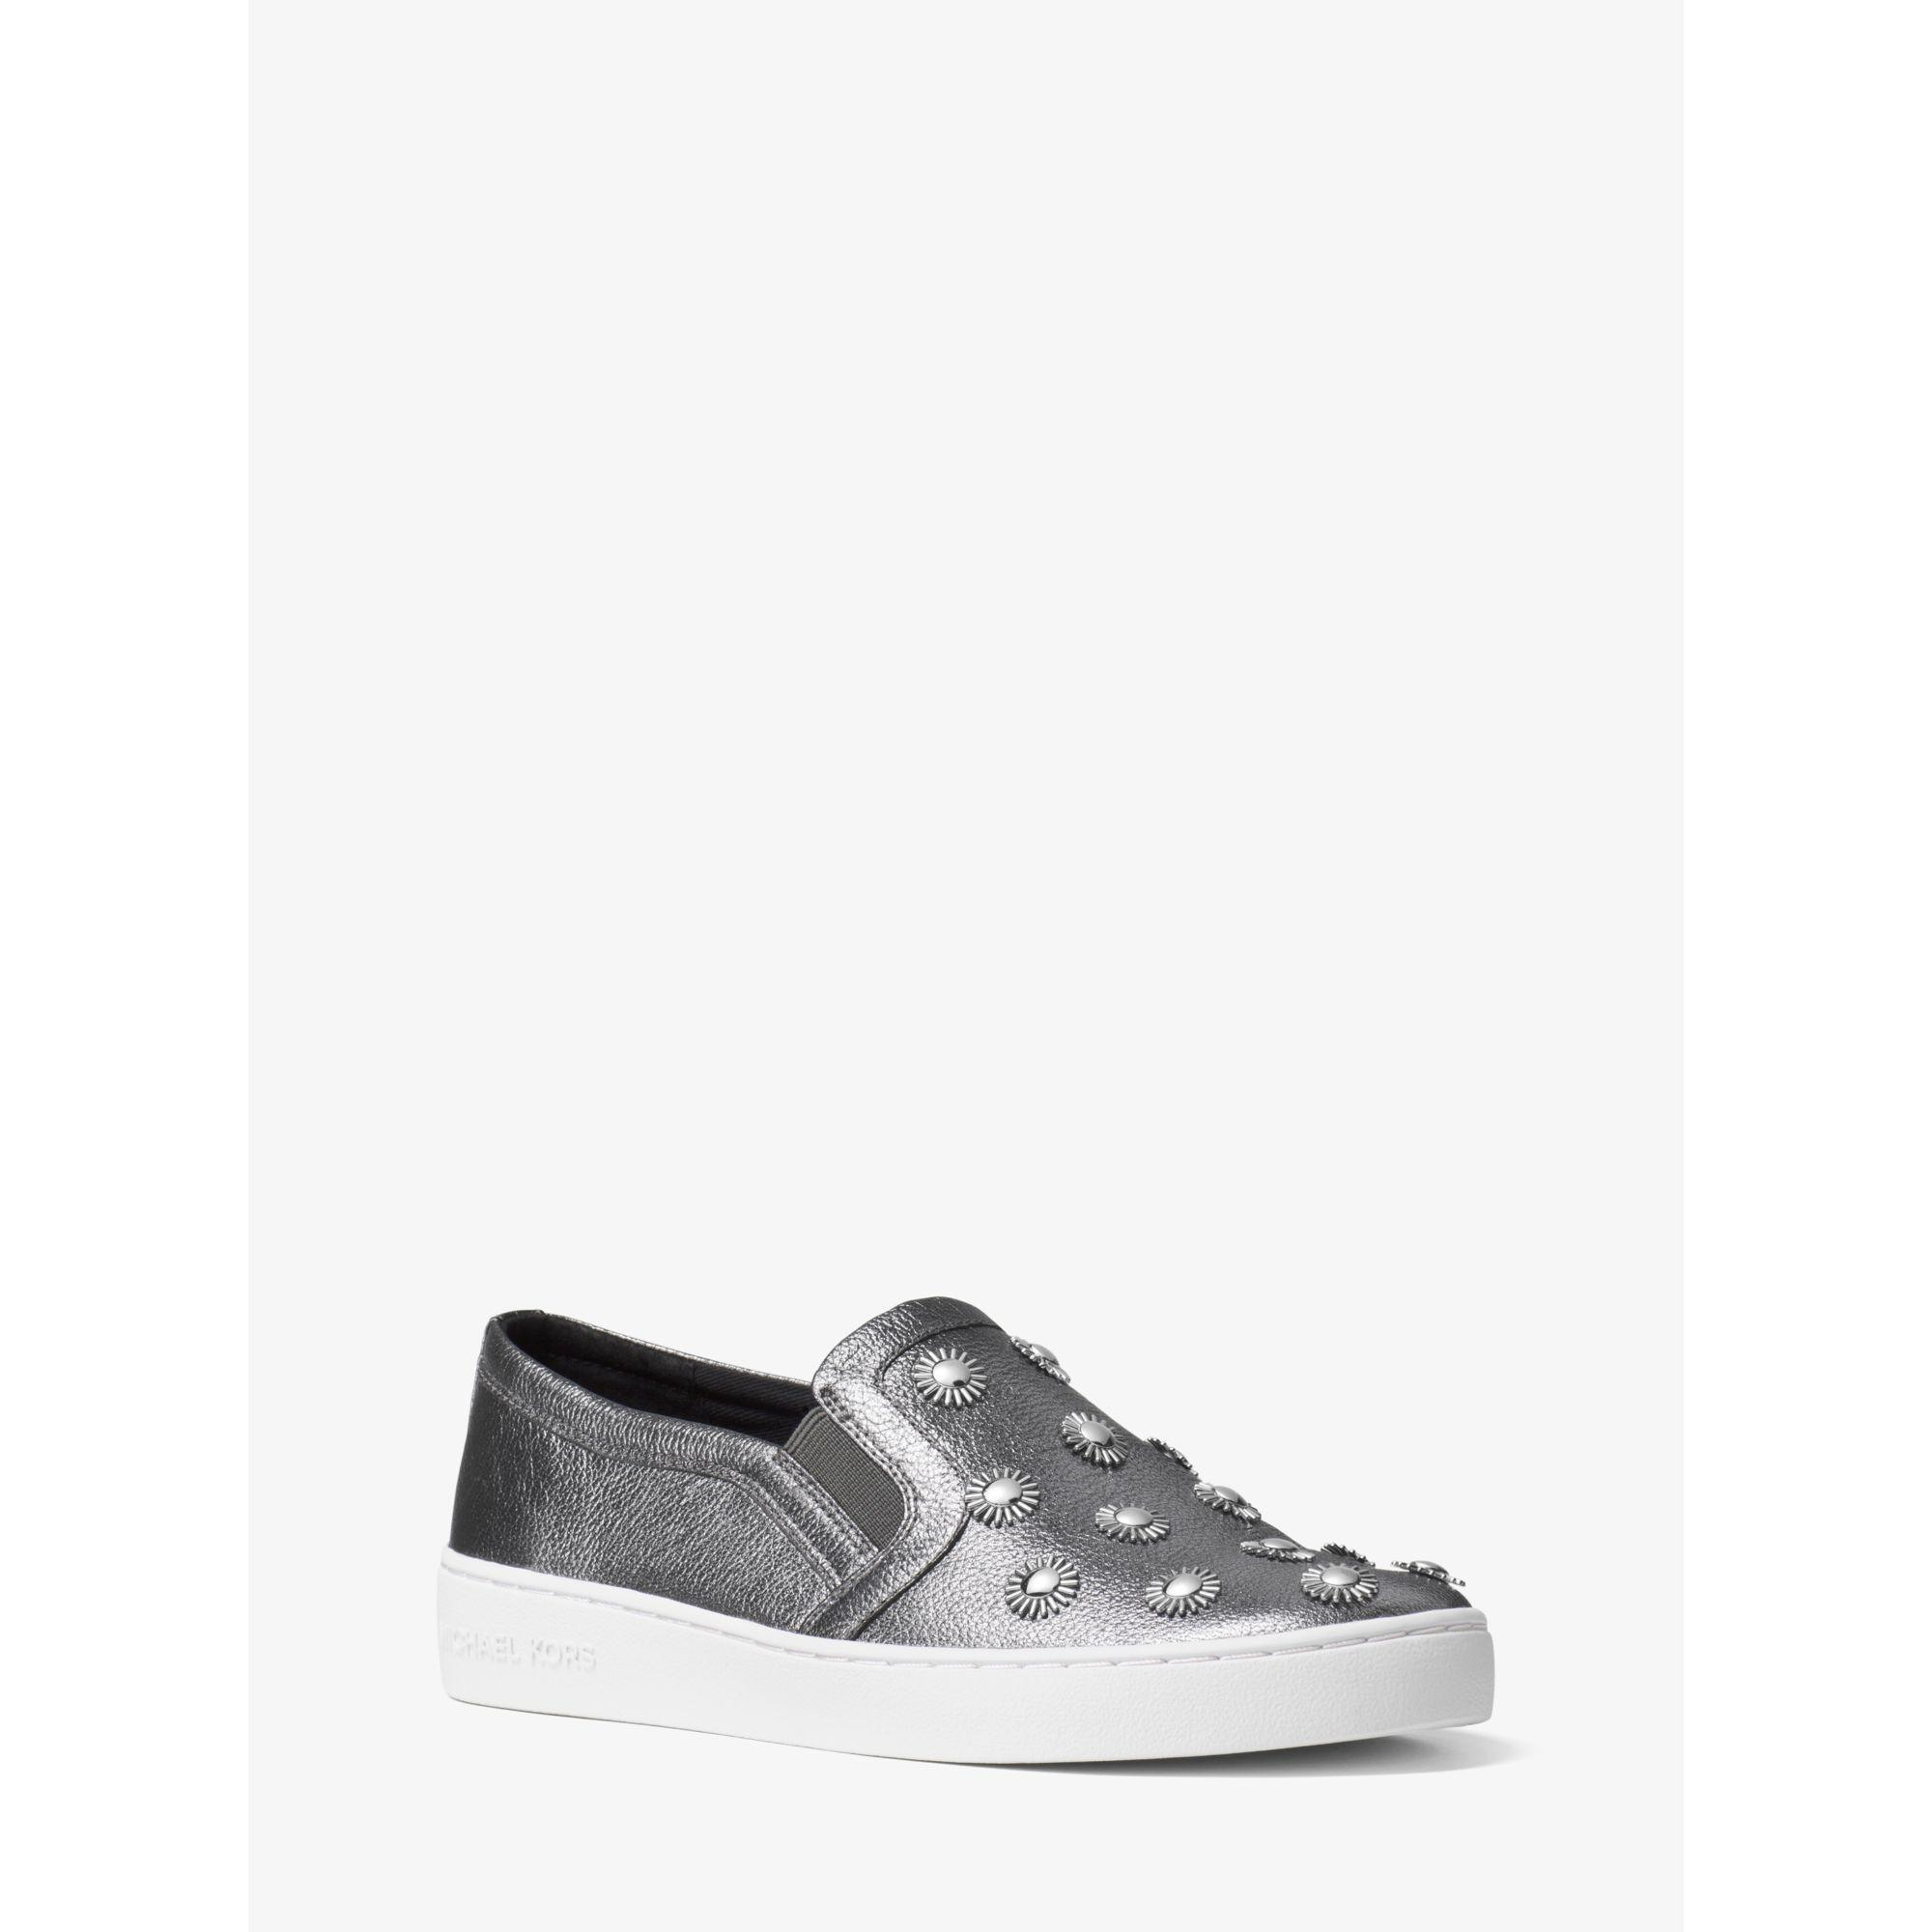 michael kors leo studded leather slip on sneaker for men lyst. Black Bedroom Furniture Sets. Home Design Ideas